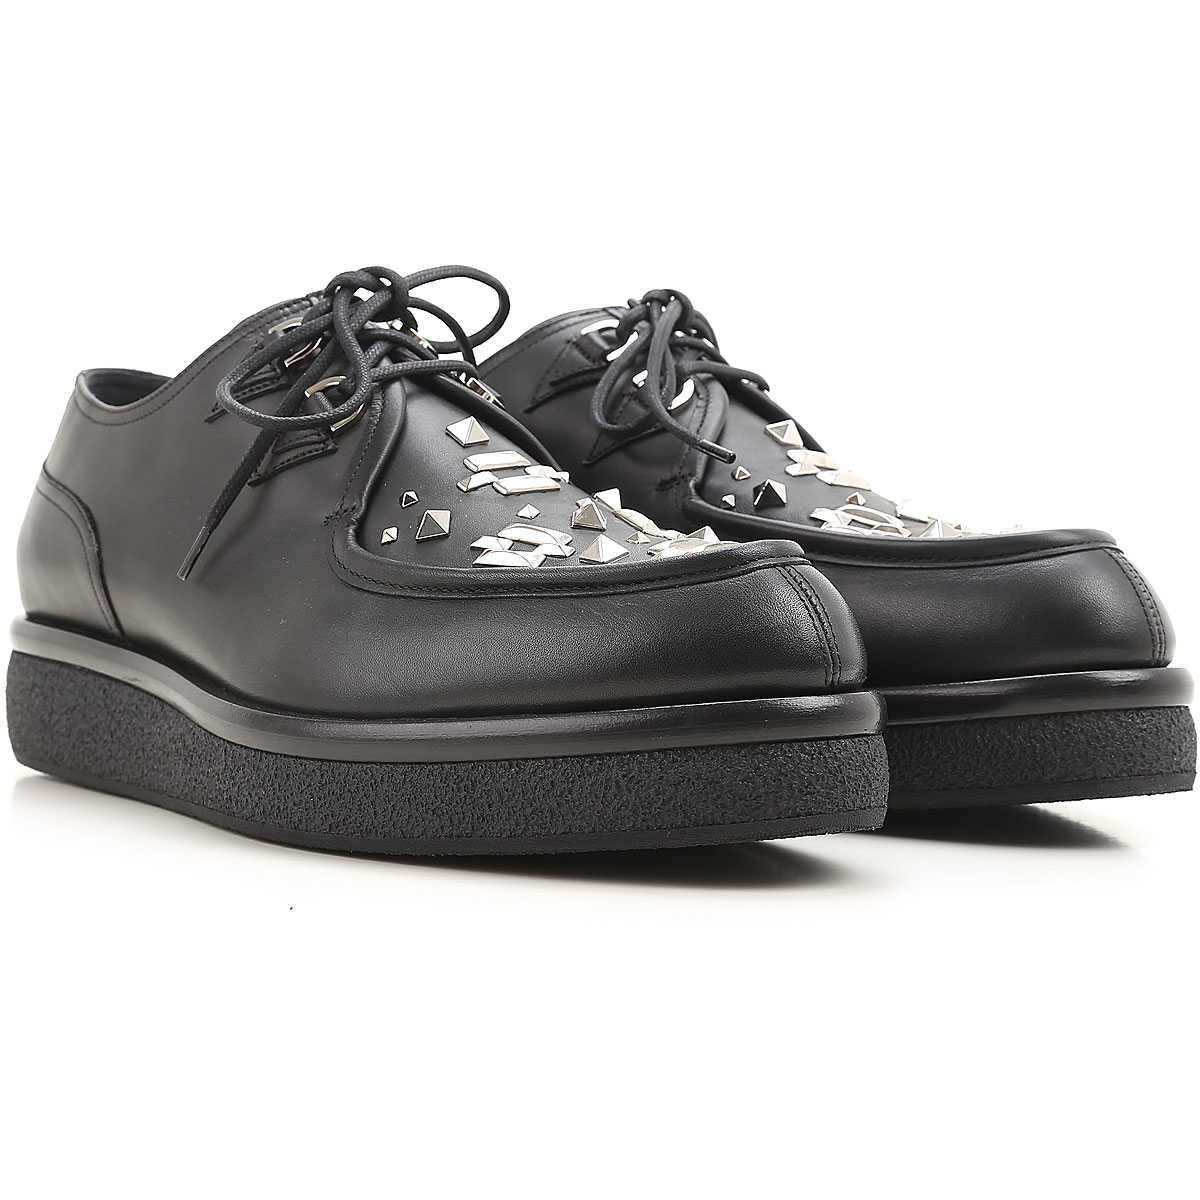 Valentino Garavani Lace Up Shoes for Men Oxfords Derbies and Brogues On Sale in Outlet SE - GOOFASH